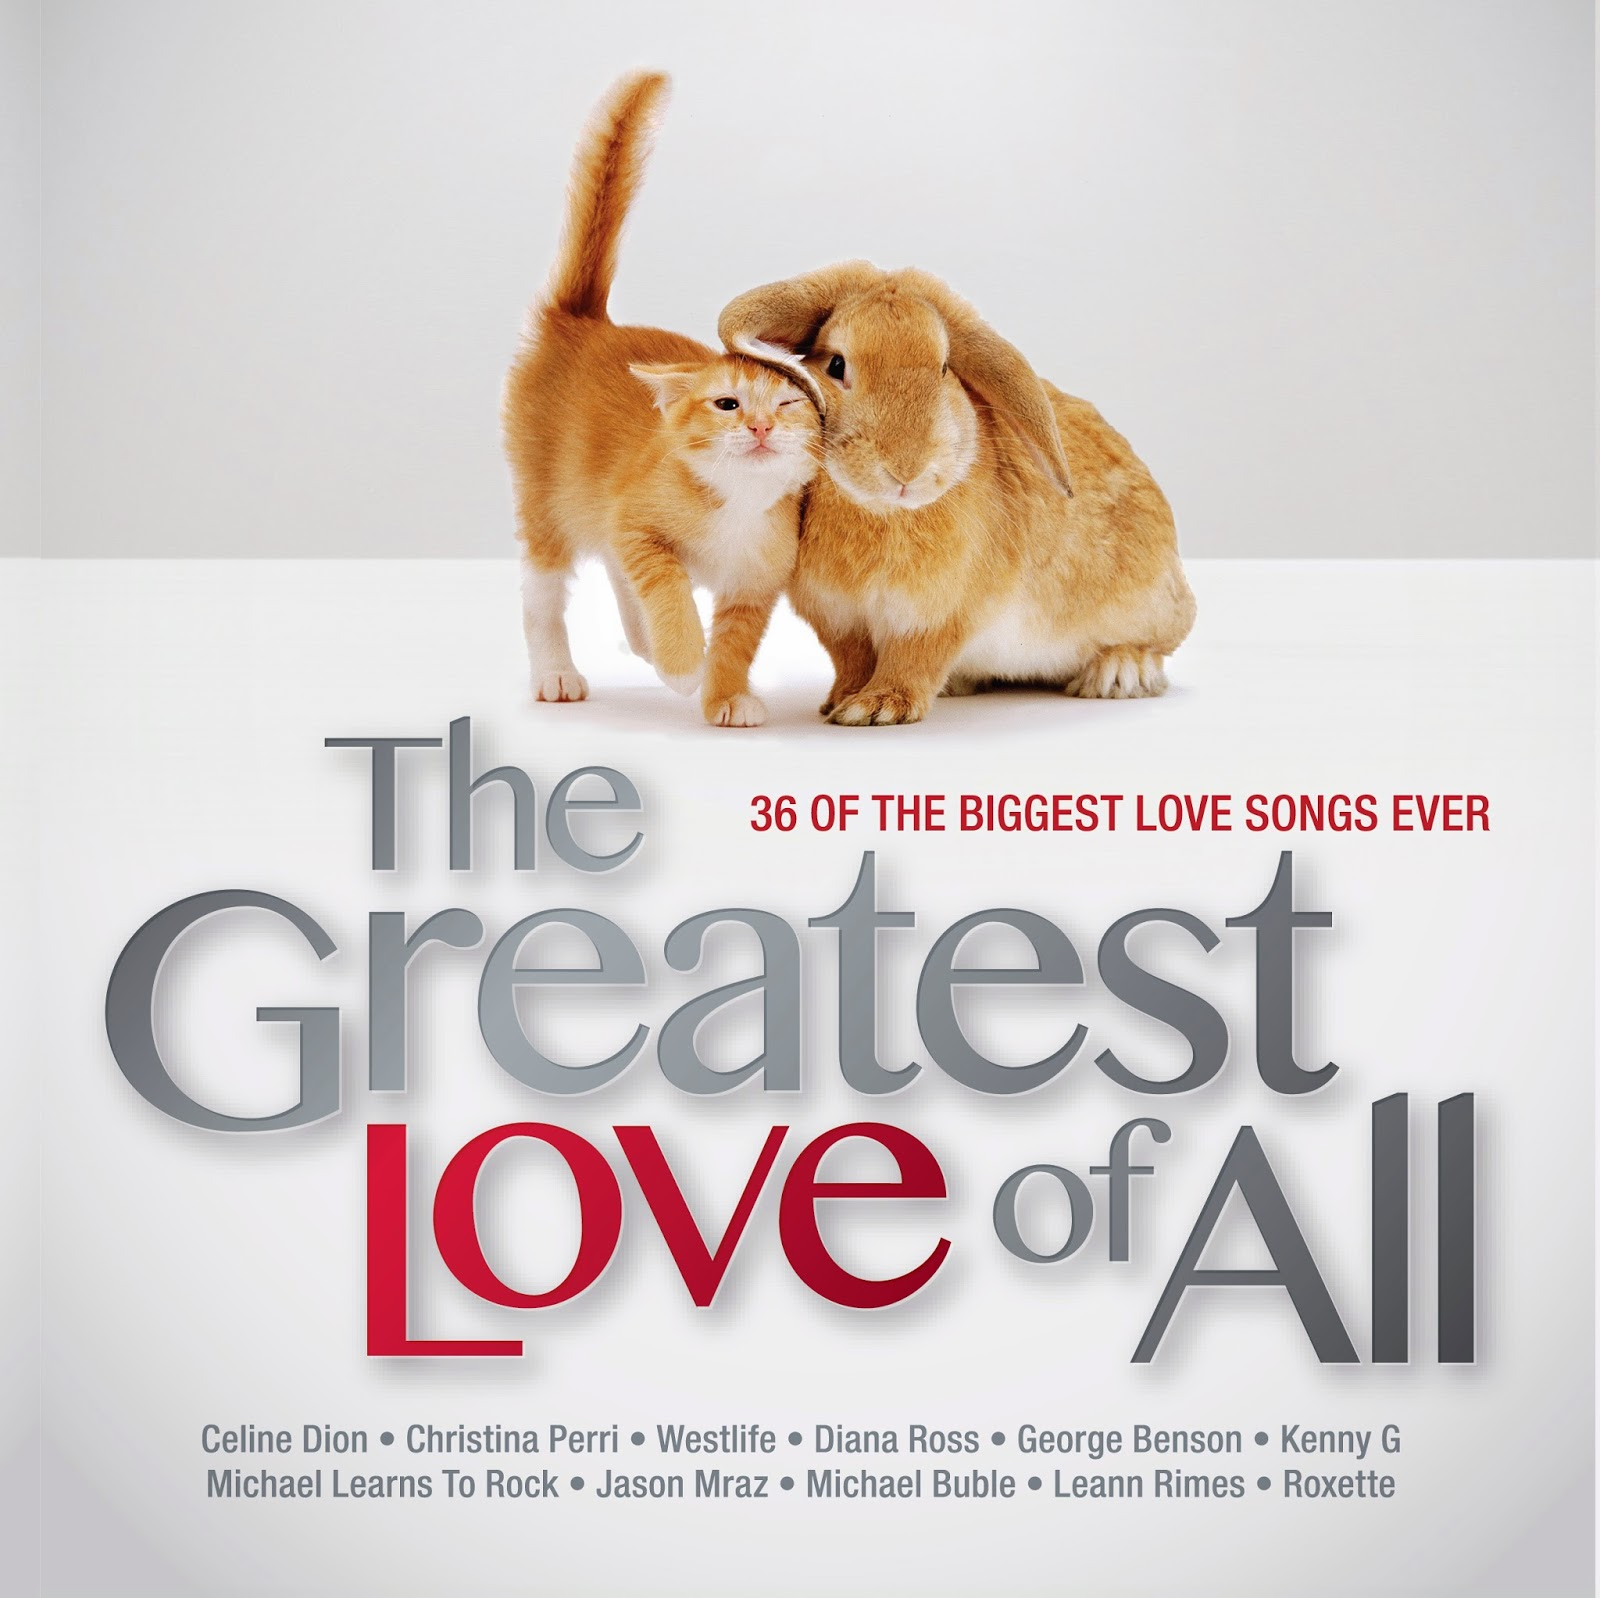 Greatest love songs of all time music